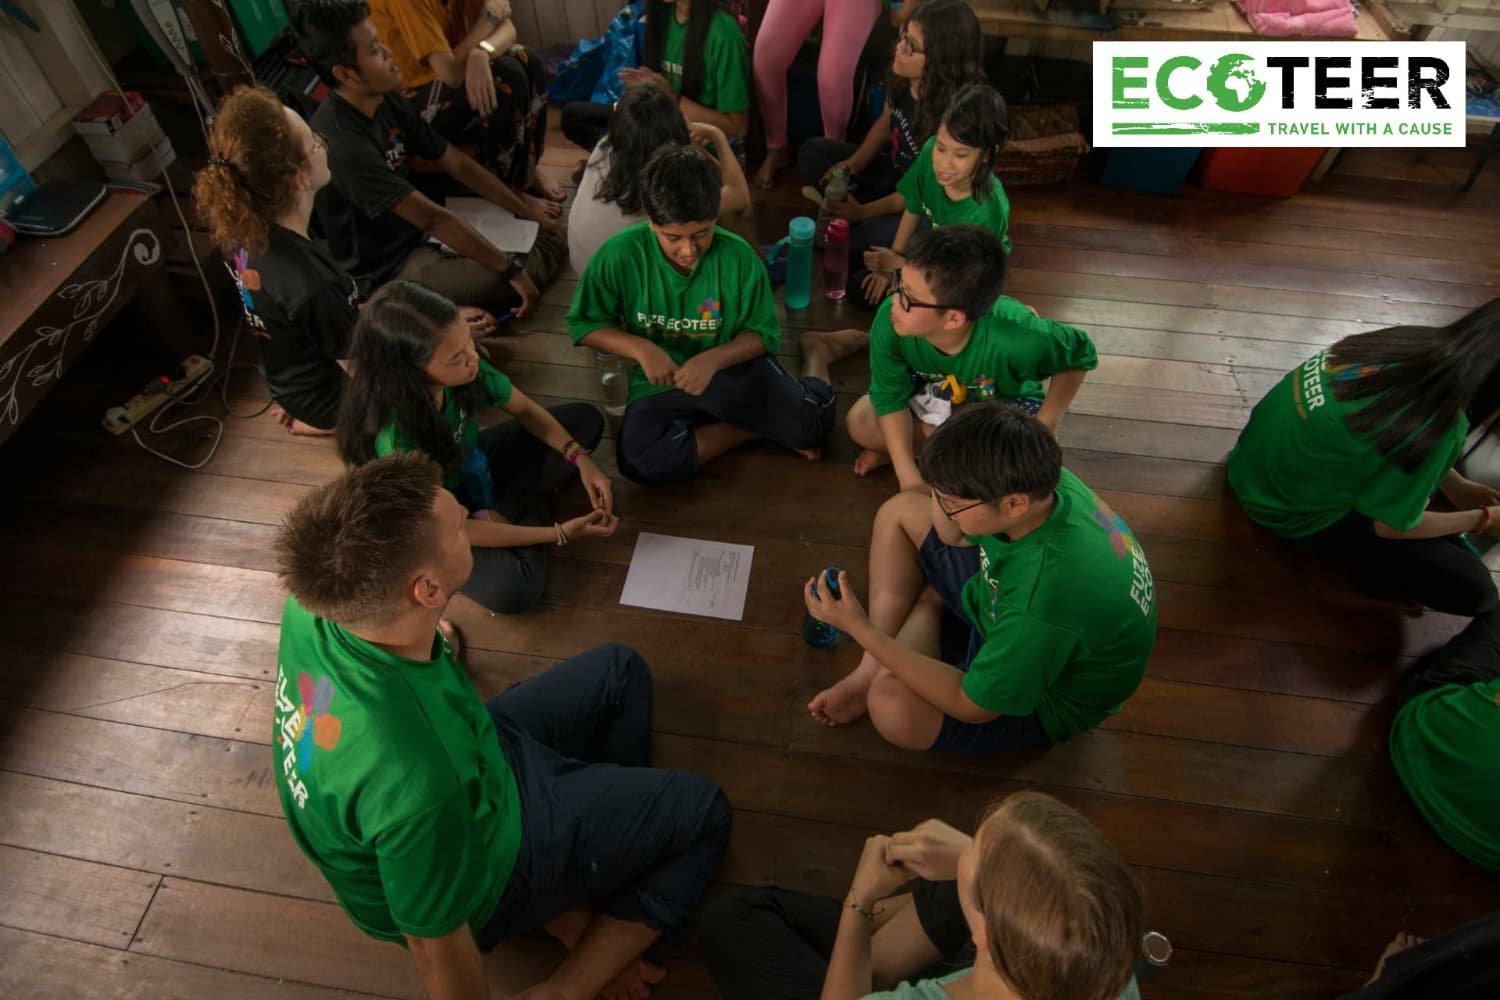 The Story Of Ecoteer